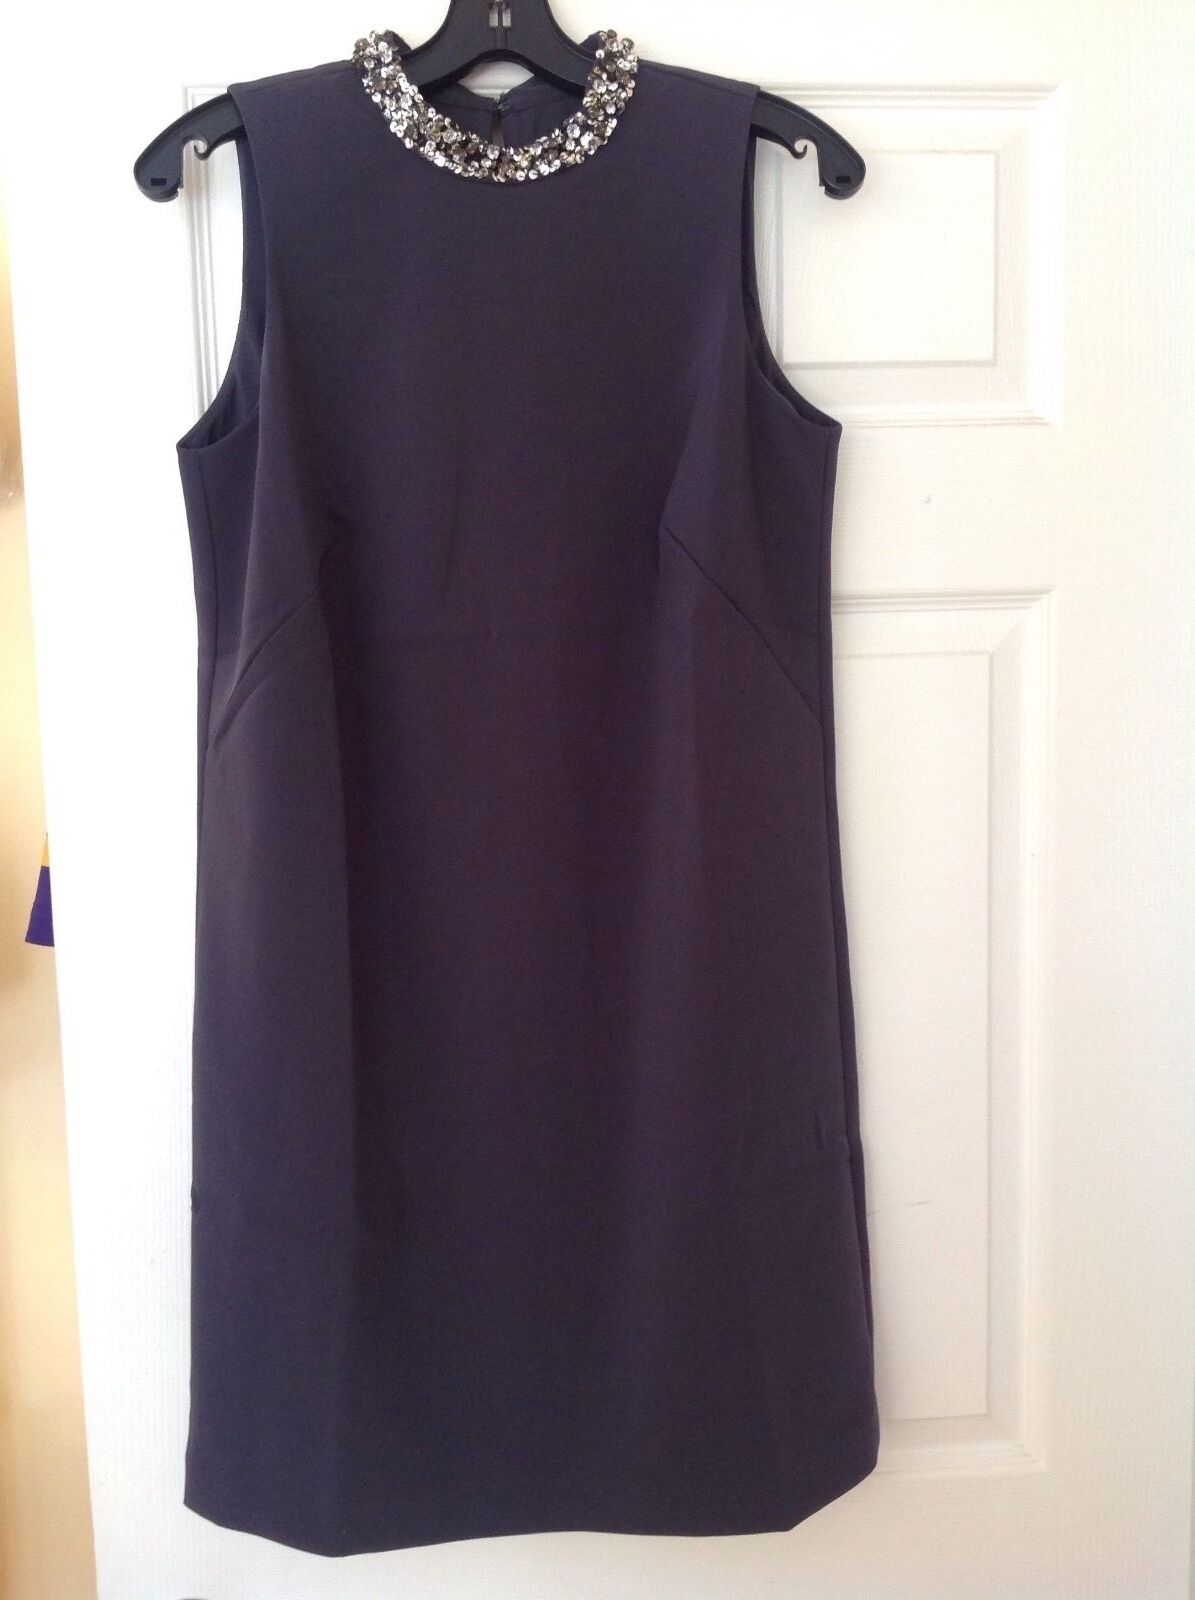 Ann Taylor Jeweled Neck Dress, NWT, sz.6 , grau, orig Sold out style